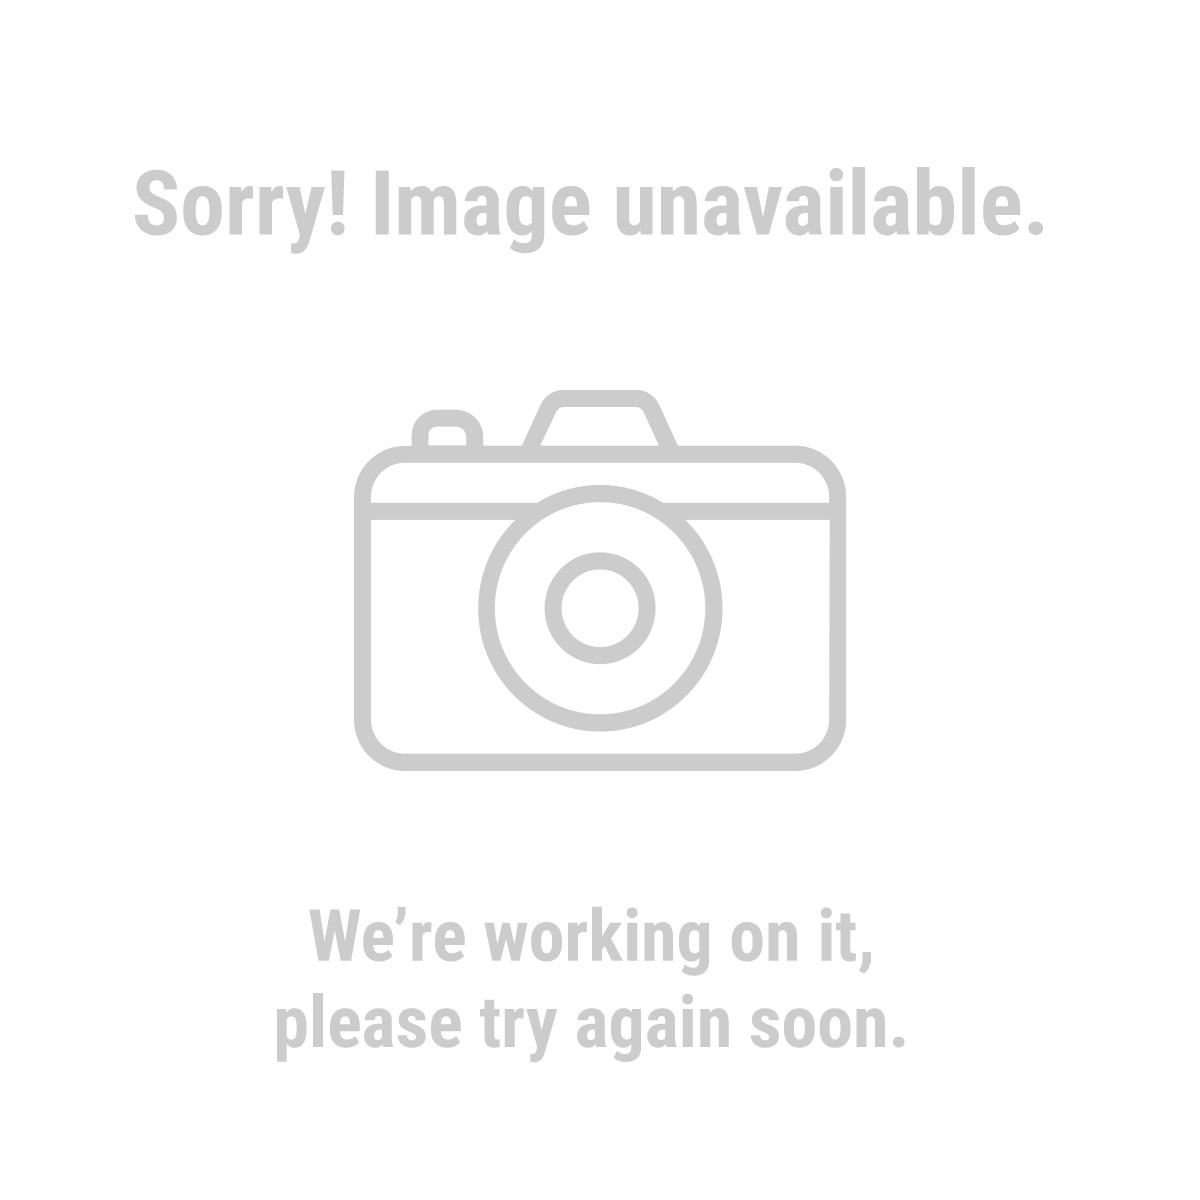 Thunderbolt Magnum 68131 4 Pack CR2016 Lithium Button Cell Batteries